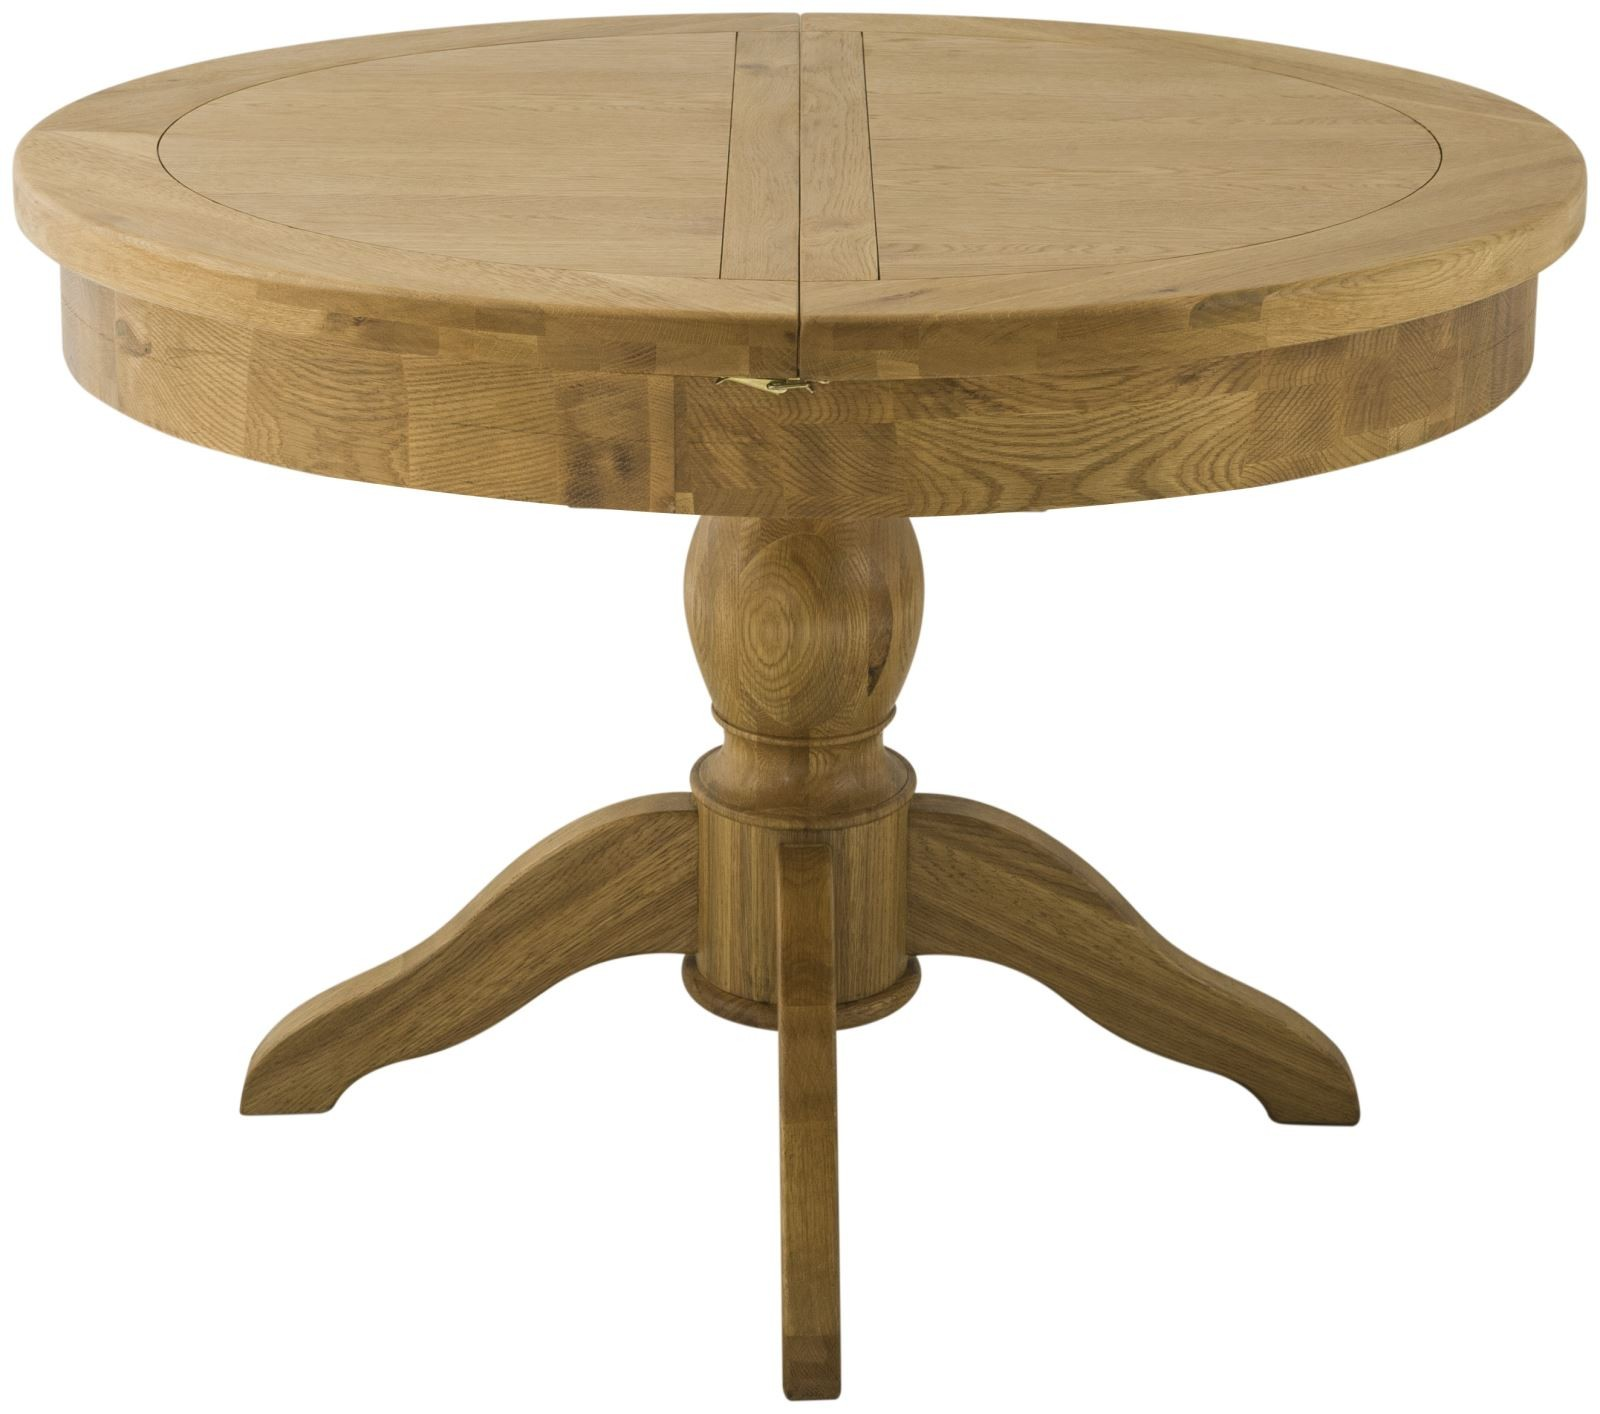 PRESTON GRAND Round Butterfly Extending Dining Table